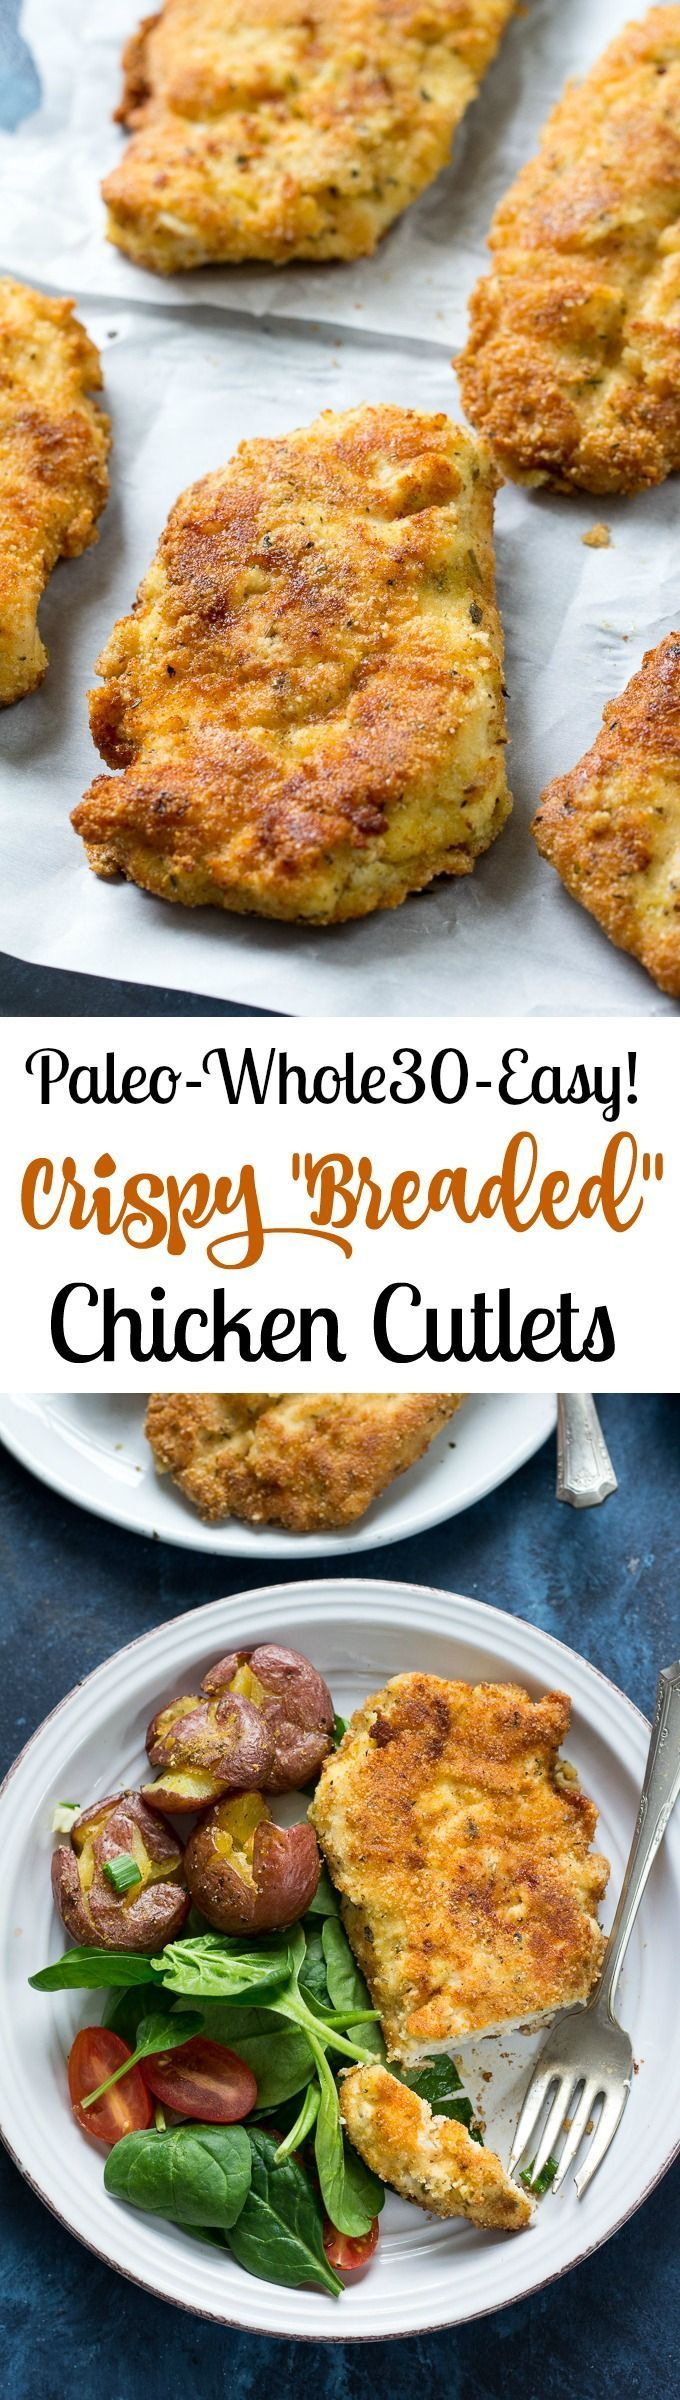 """My family's favorite """"breaded"""" Paleo Chicken Cutlets that are super easy, quick, and just as good as the original.  Whole30 compliant and kid friendly - you can put these on you """"go-to"""" dinner list!"""